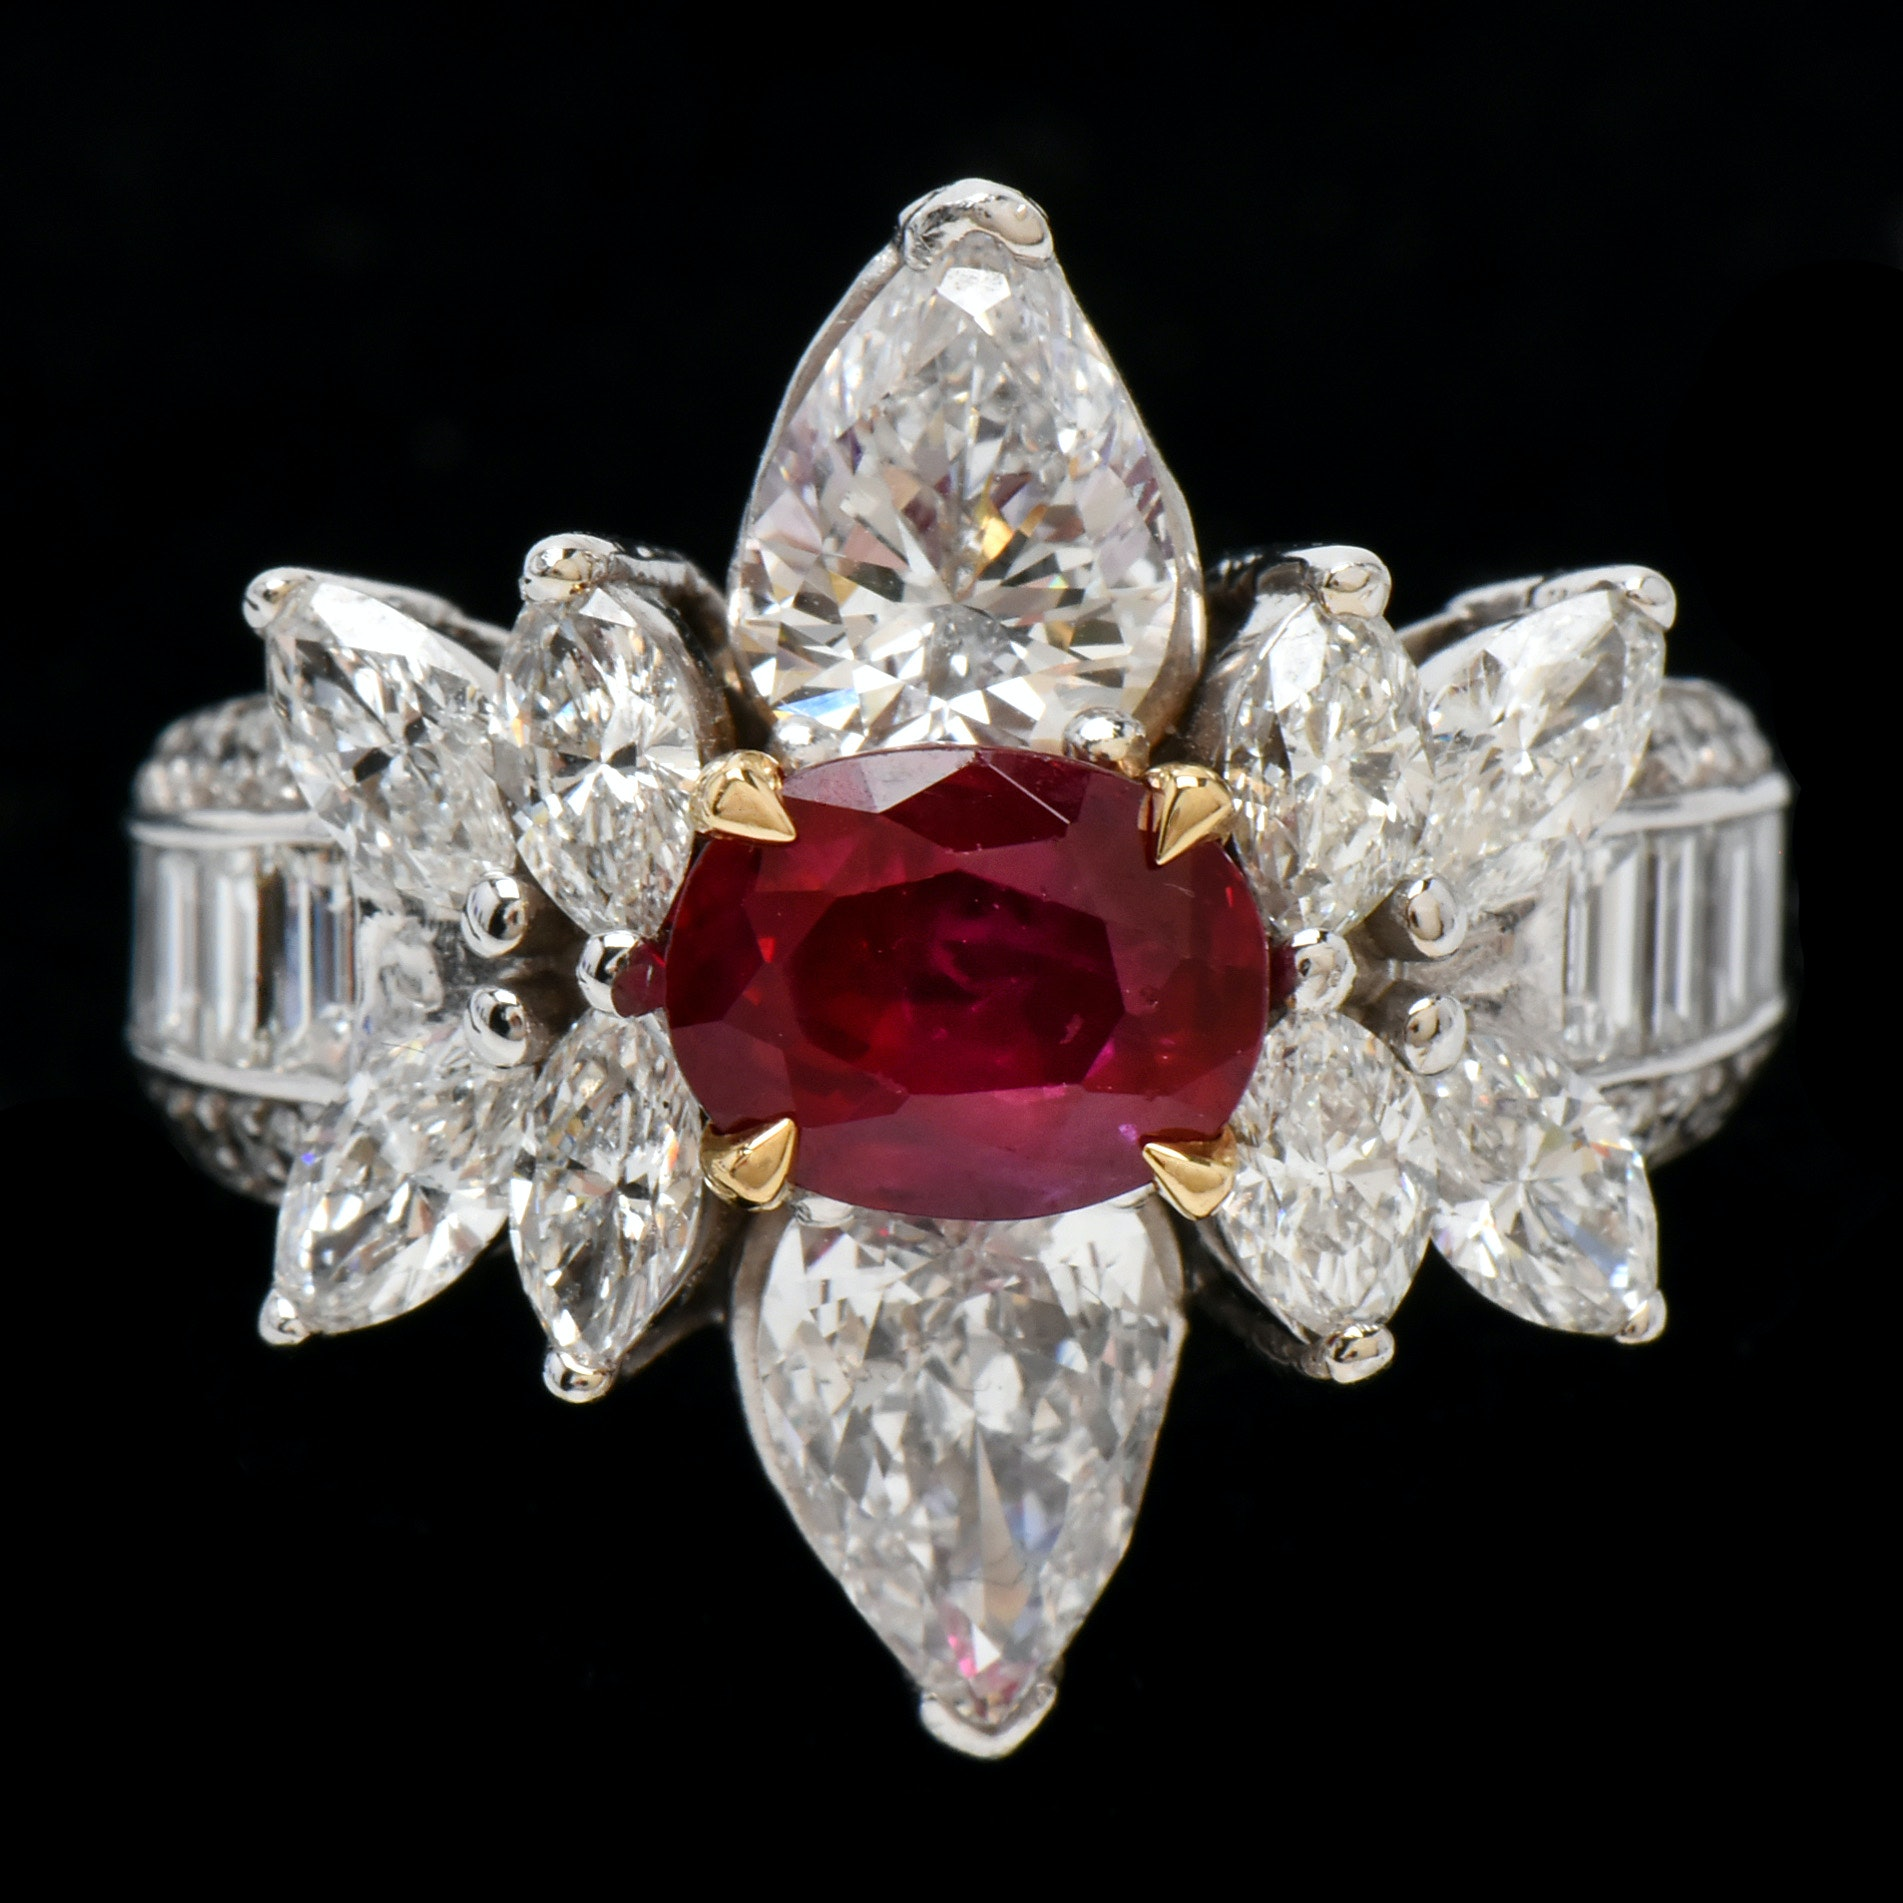 14K White Gold 2.00 CT Burmese Ruby and 4.32 CTW Diamond Ring with GIA Report